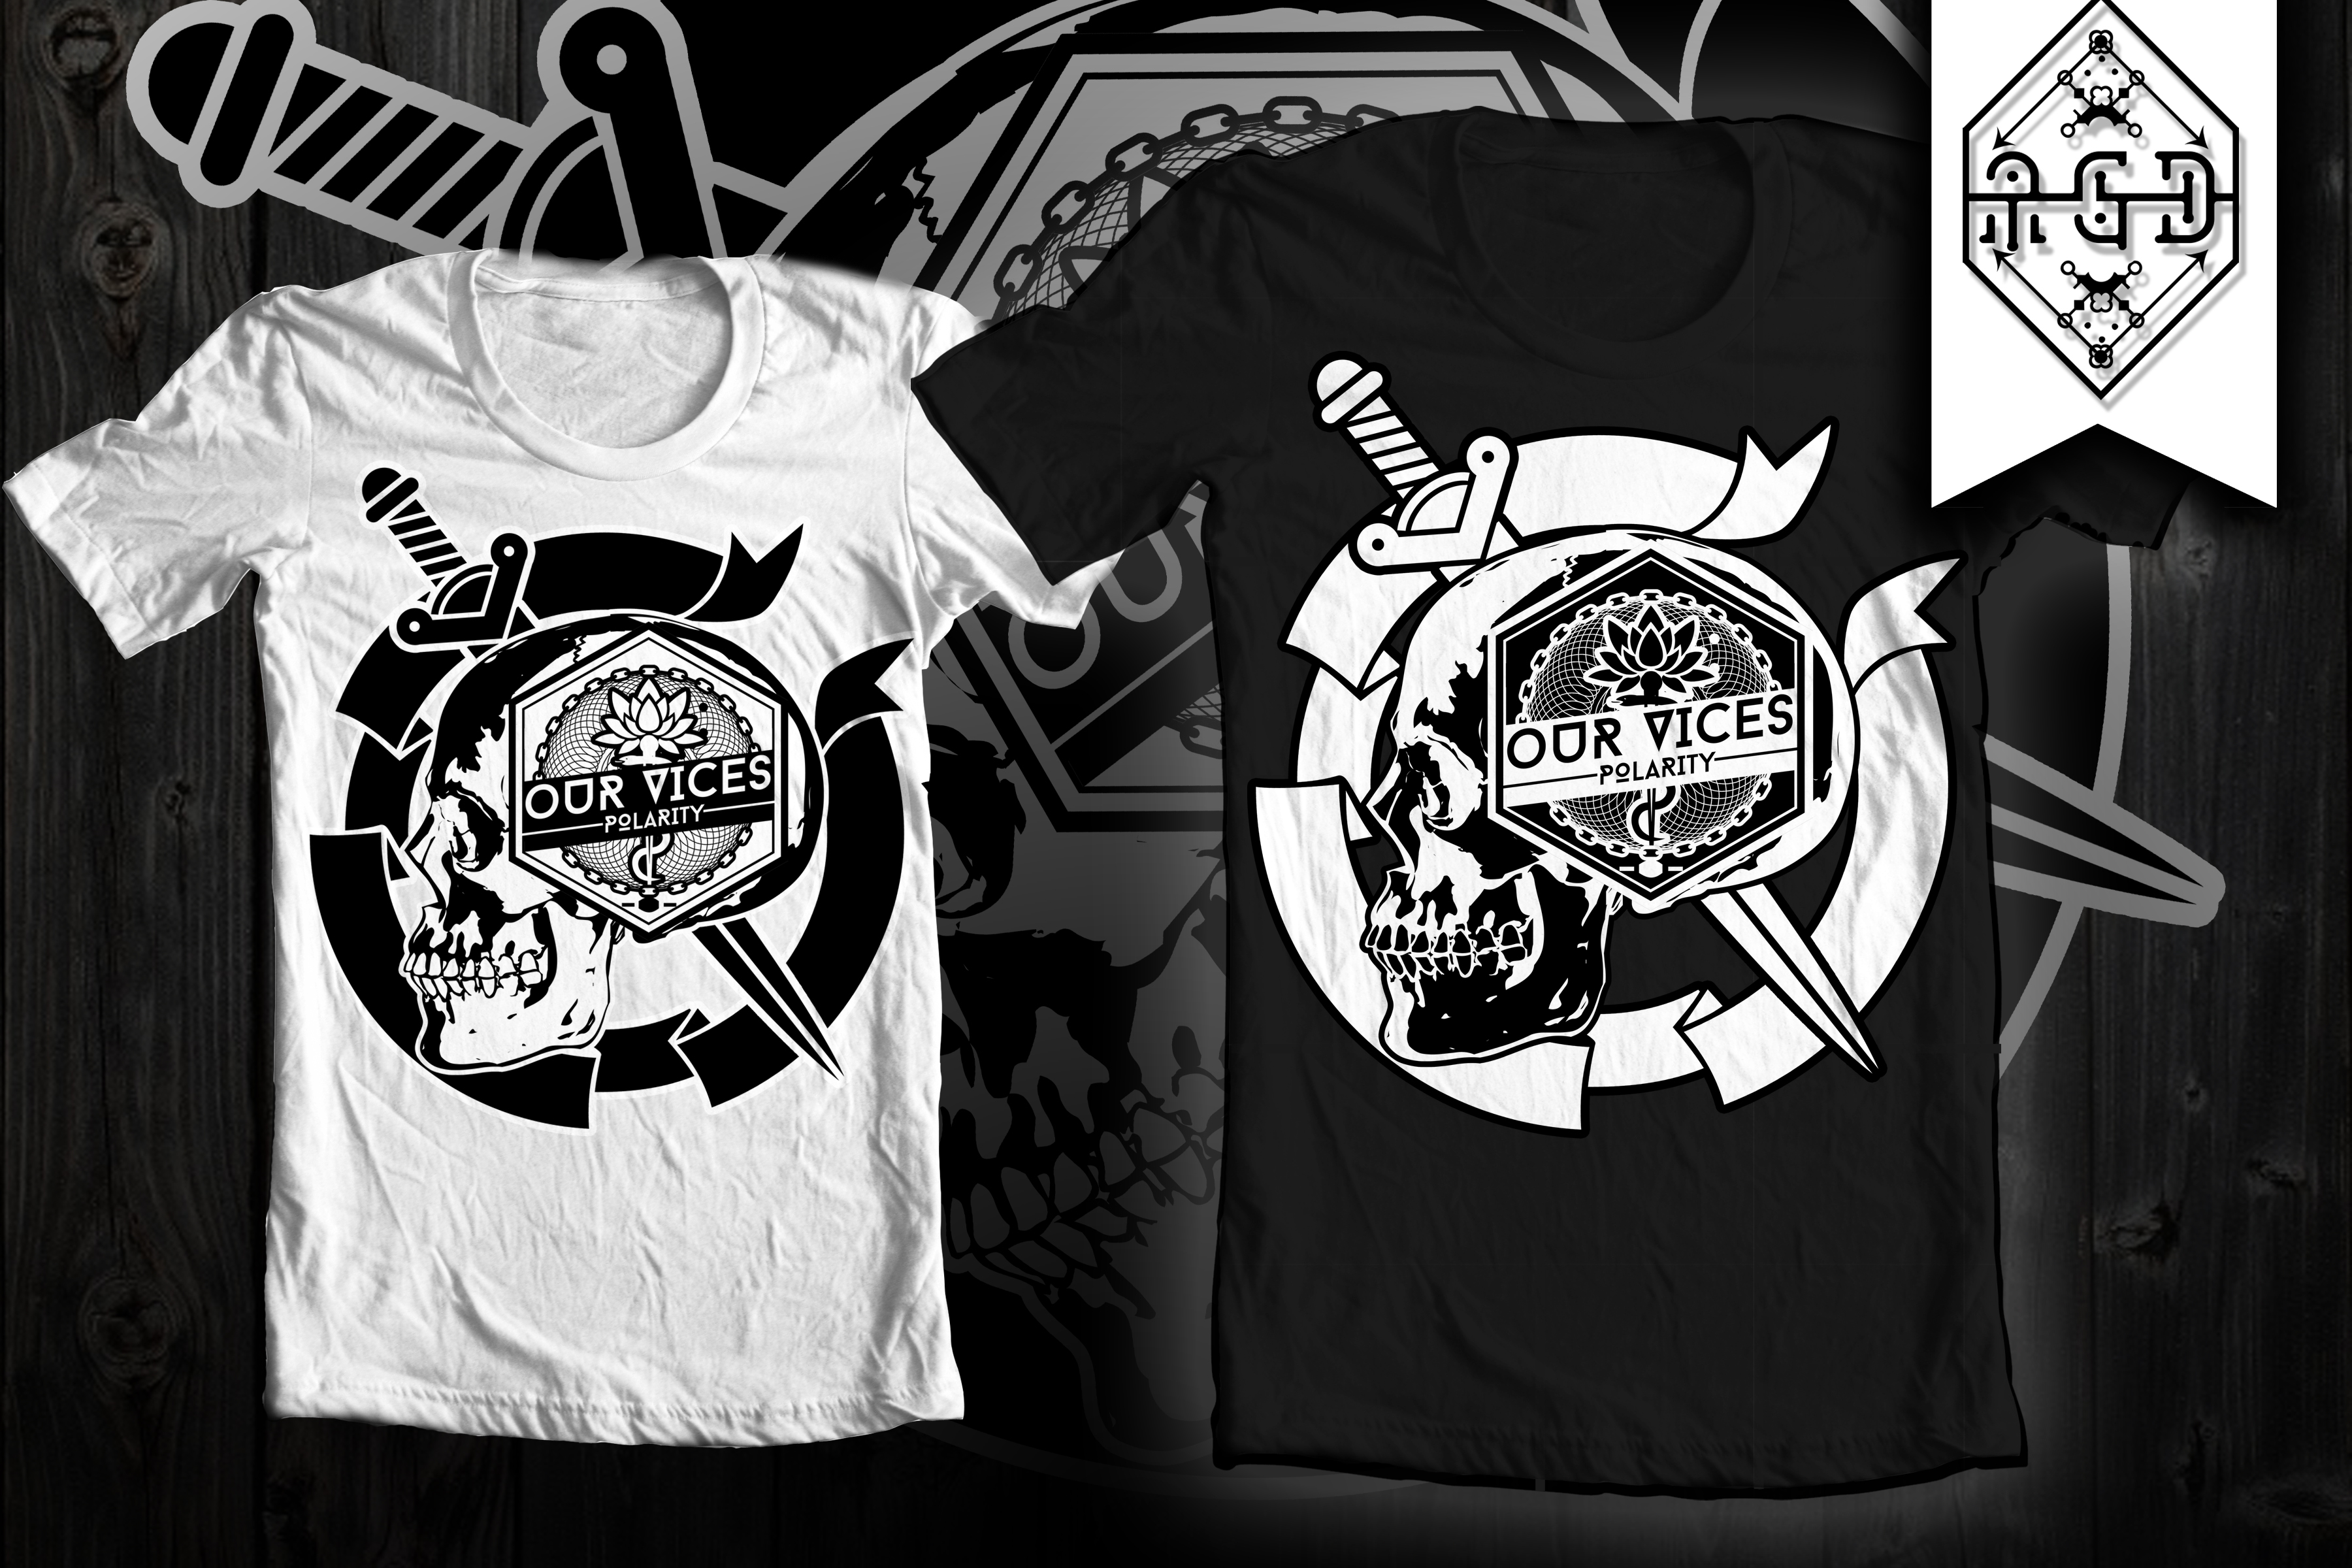 Shirt design layout - Update Design Done By Andy Glass Of We Came As Romans The Same Design Will Be On The Sweatshirts And They Will Be Black